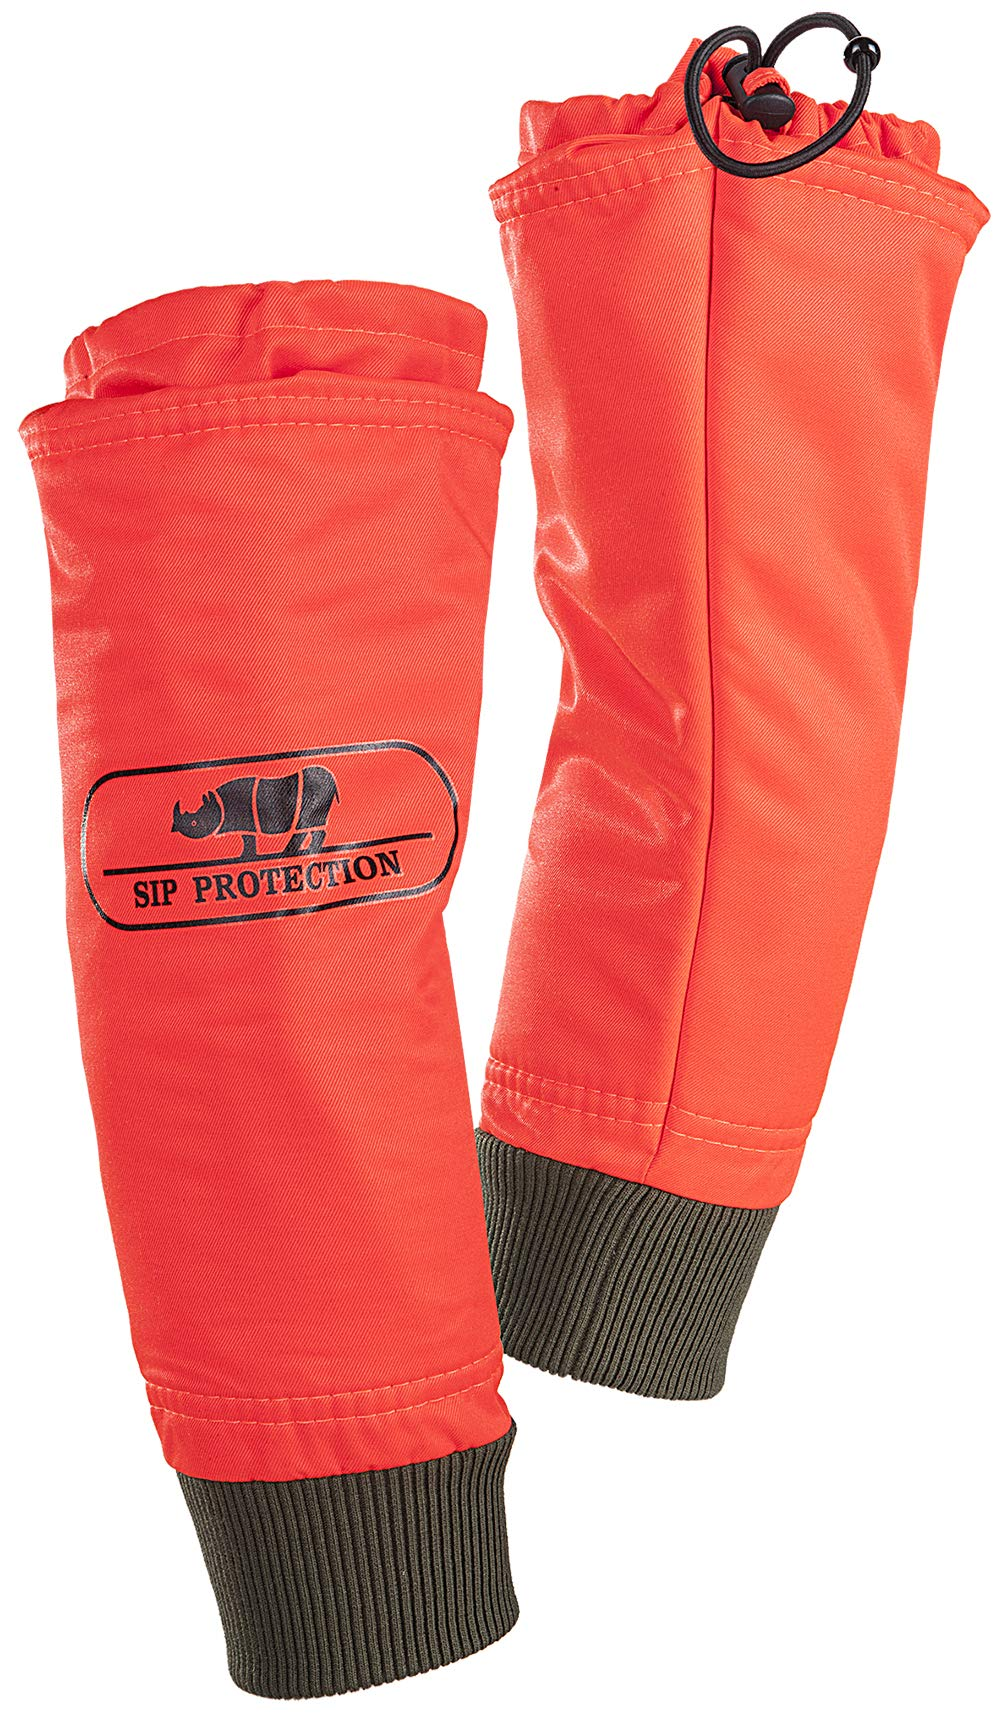 SIP Protection Arborist Sleeve Chainsaw Protection with Elastic Cord (Large) by SIP Protection